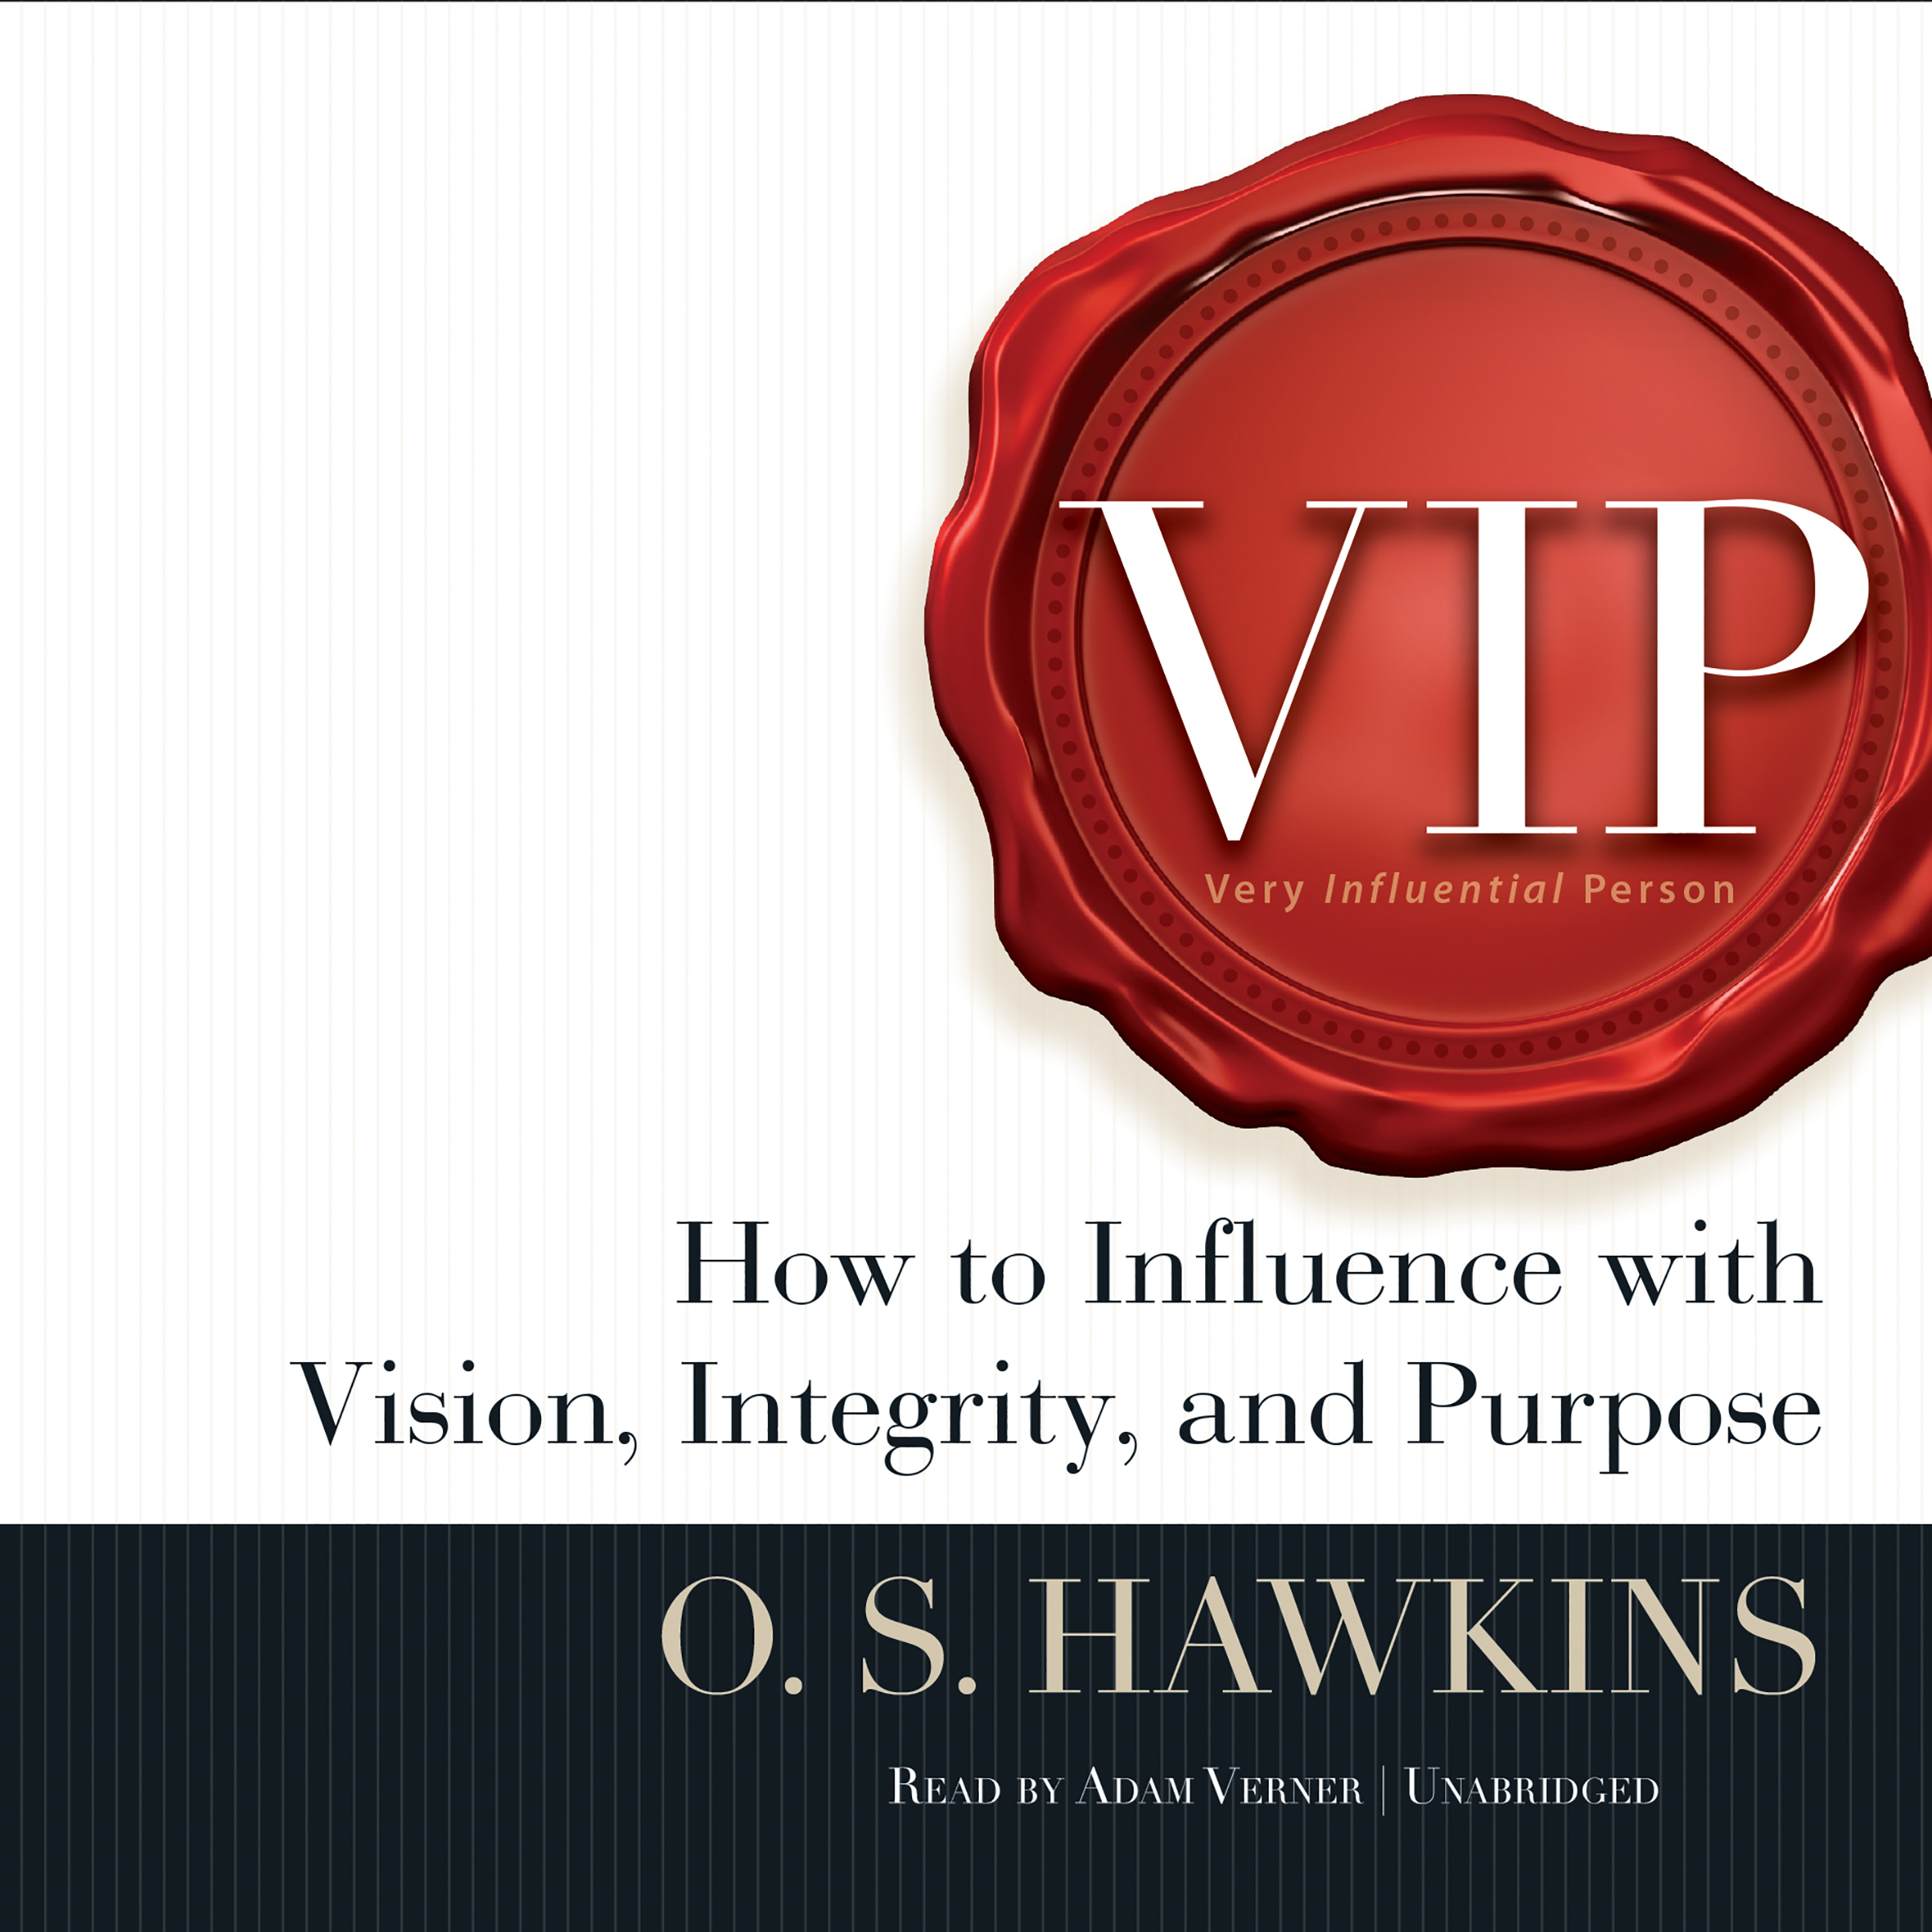 Printable VIP: How to Influence with Vision, Integrity, and Purpose Audiobook Cover Art